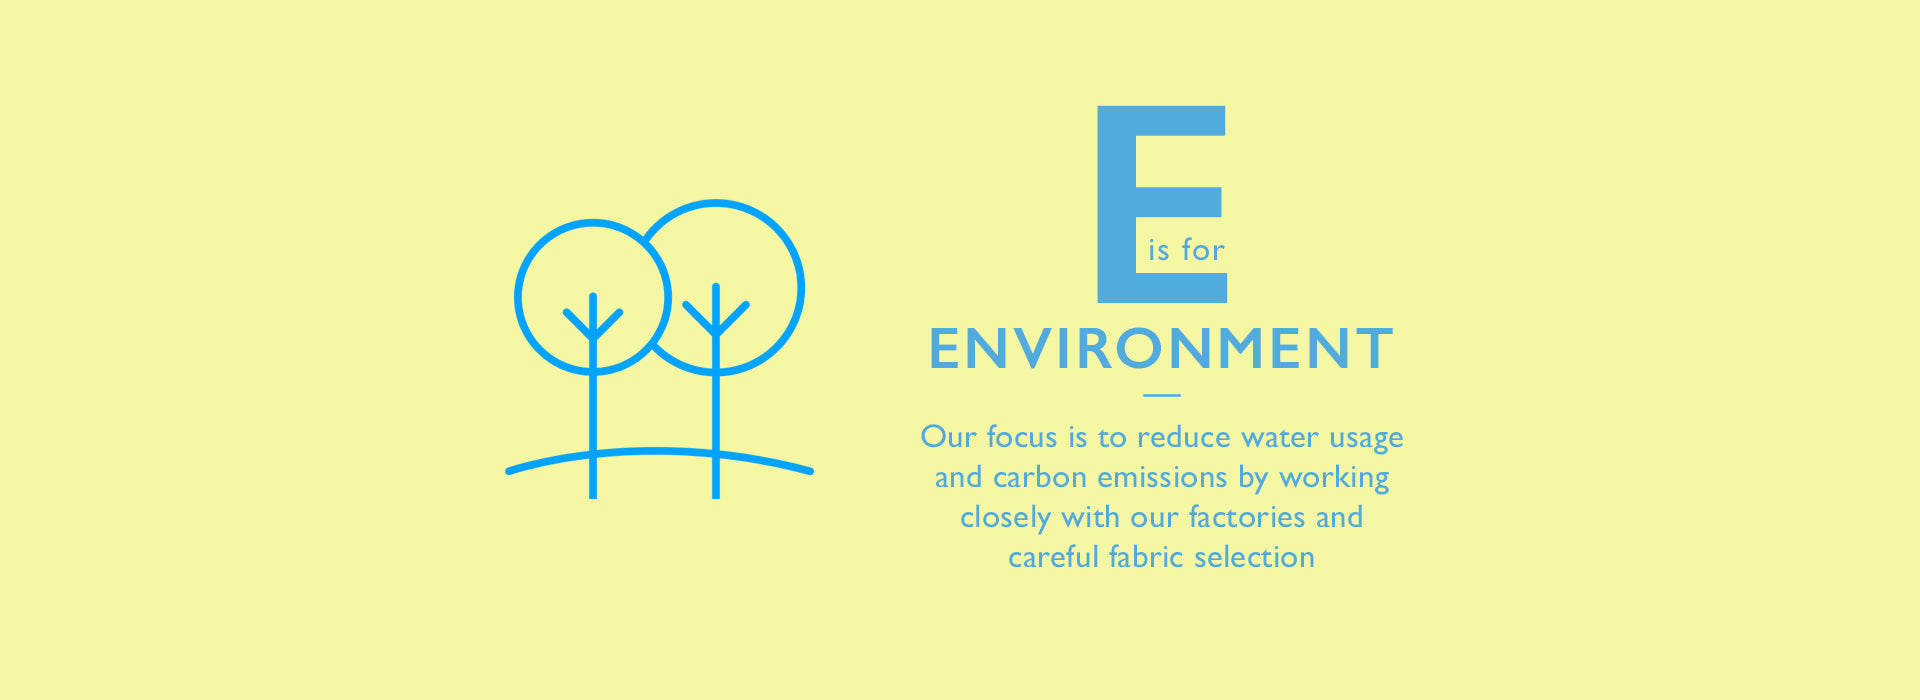 E is for Environment. Our focus is to reduce water usage and carbon emissions by working closely with our factories and careful fabric selection